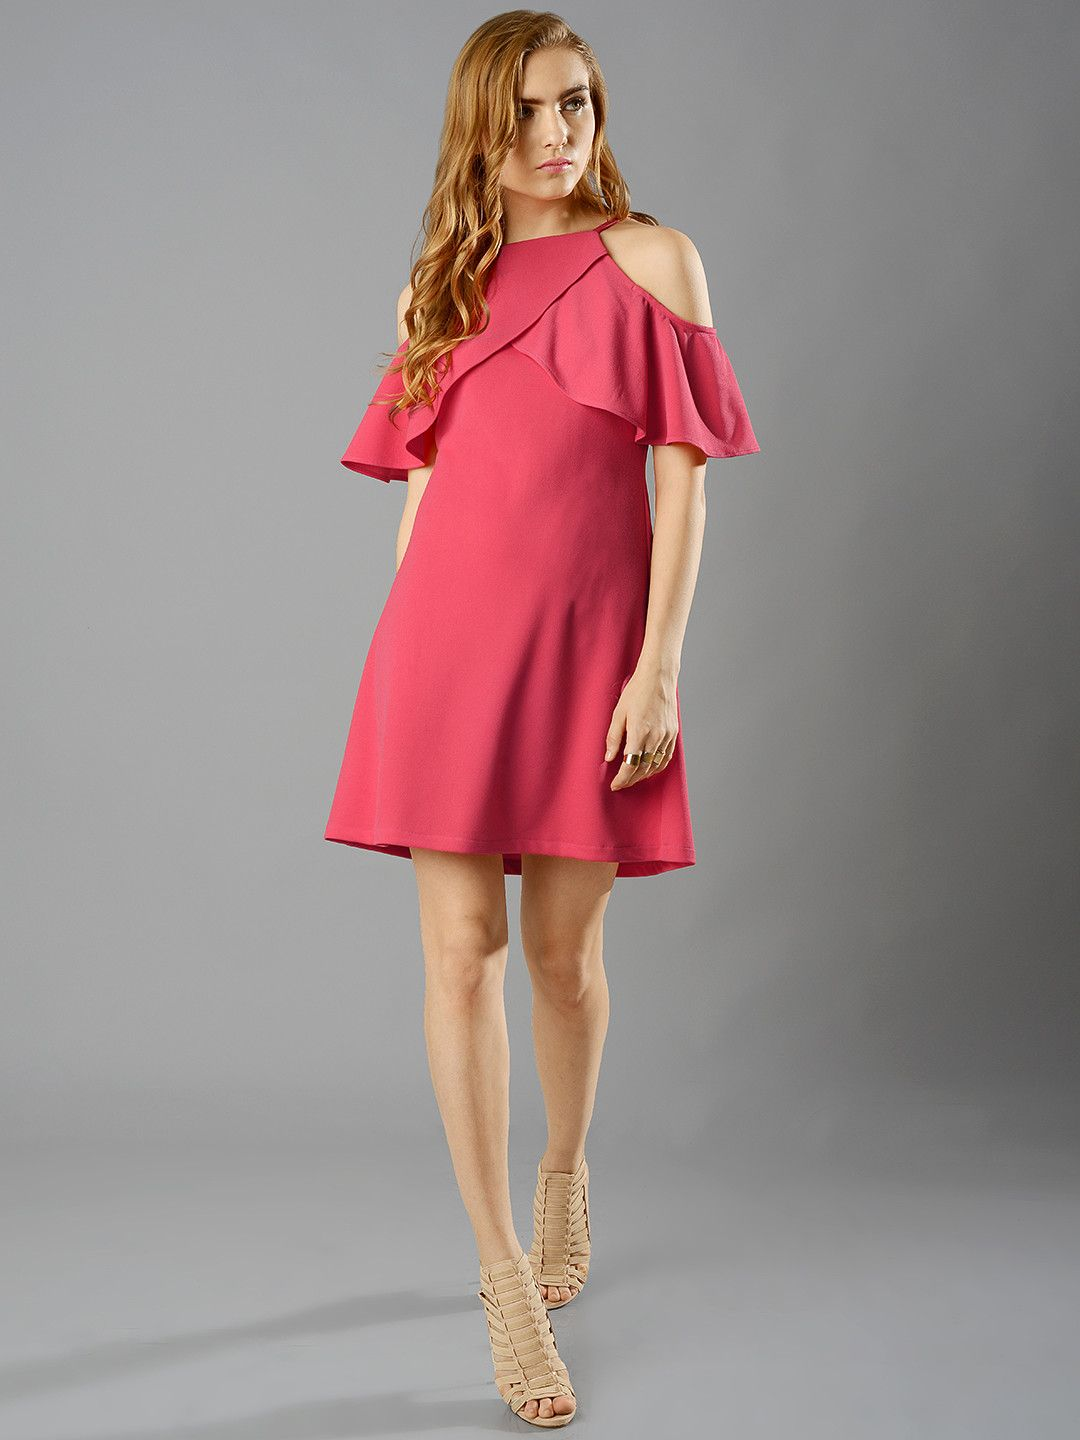 345daa2b55d5eb FabAlley Women Coral Red Cold Shoulder Solid A Line Dress #solid  #cold_shoulder